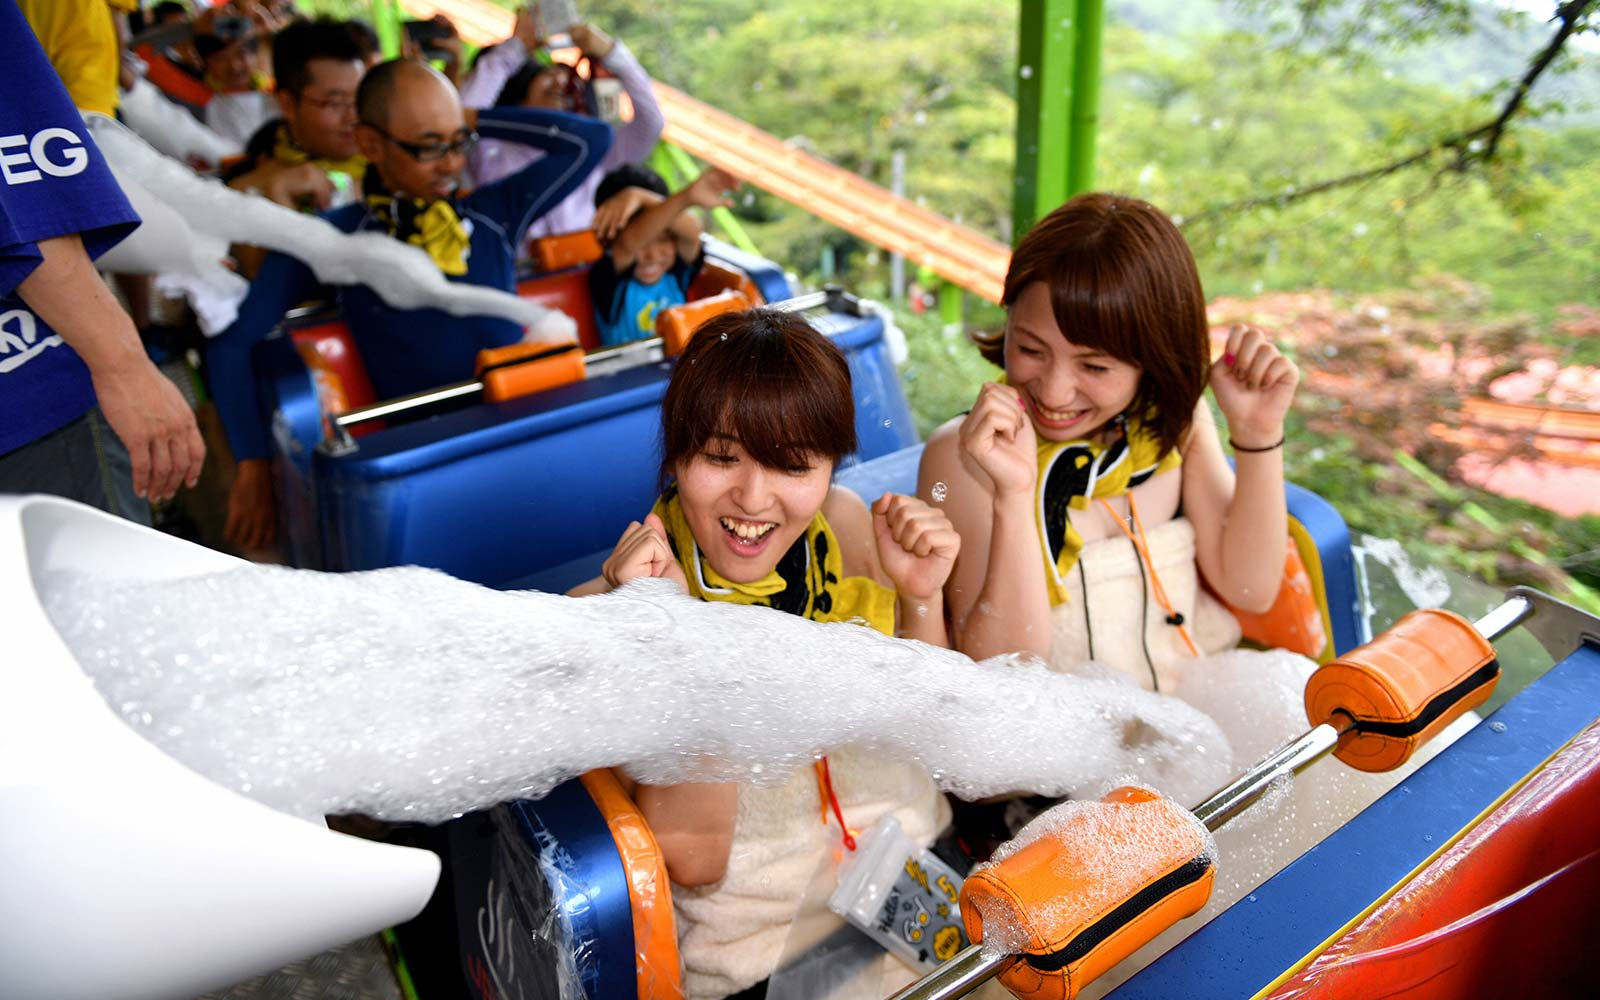 """Visitors are splashed foam while riding a rollercoaster in """"Yu-enchi"""" Spamusement park in Beppu, Oita, Japan Rakutenchi Hot Spring Onsen Theme Park"""